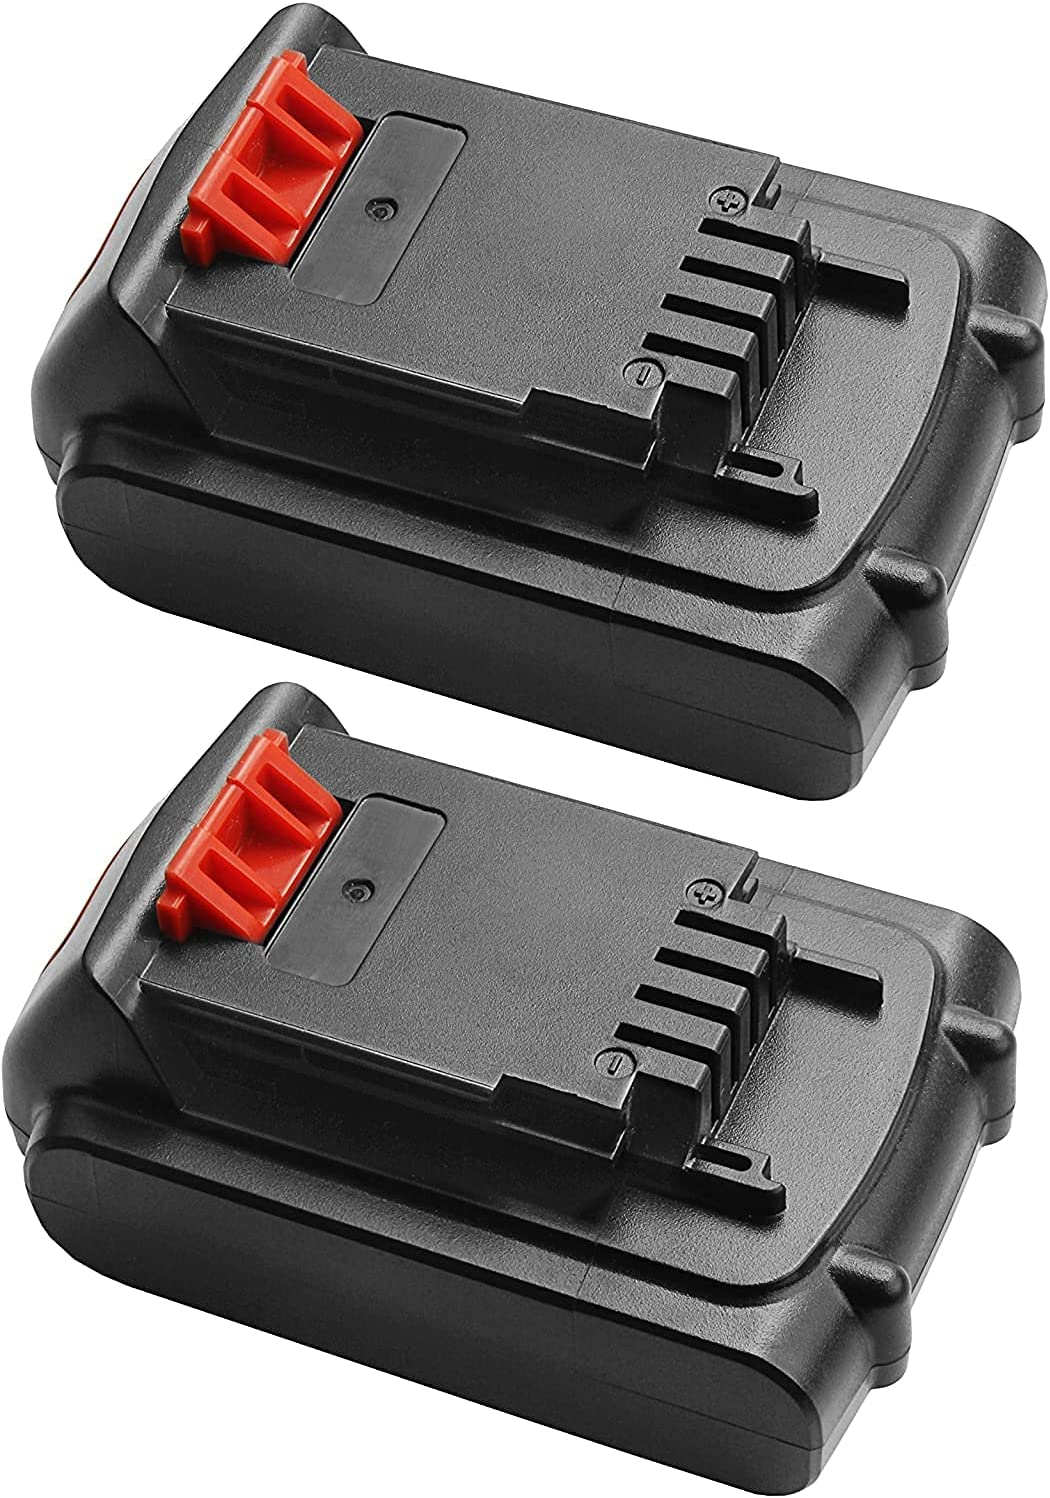 20V 4.5Ah LB20 Battery Replacement New Ranking TOP14 popularity Li-ion Decker for and Black L